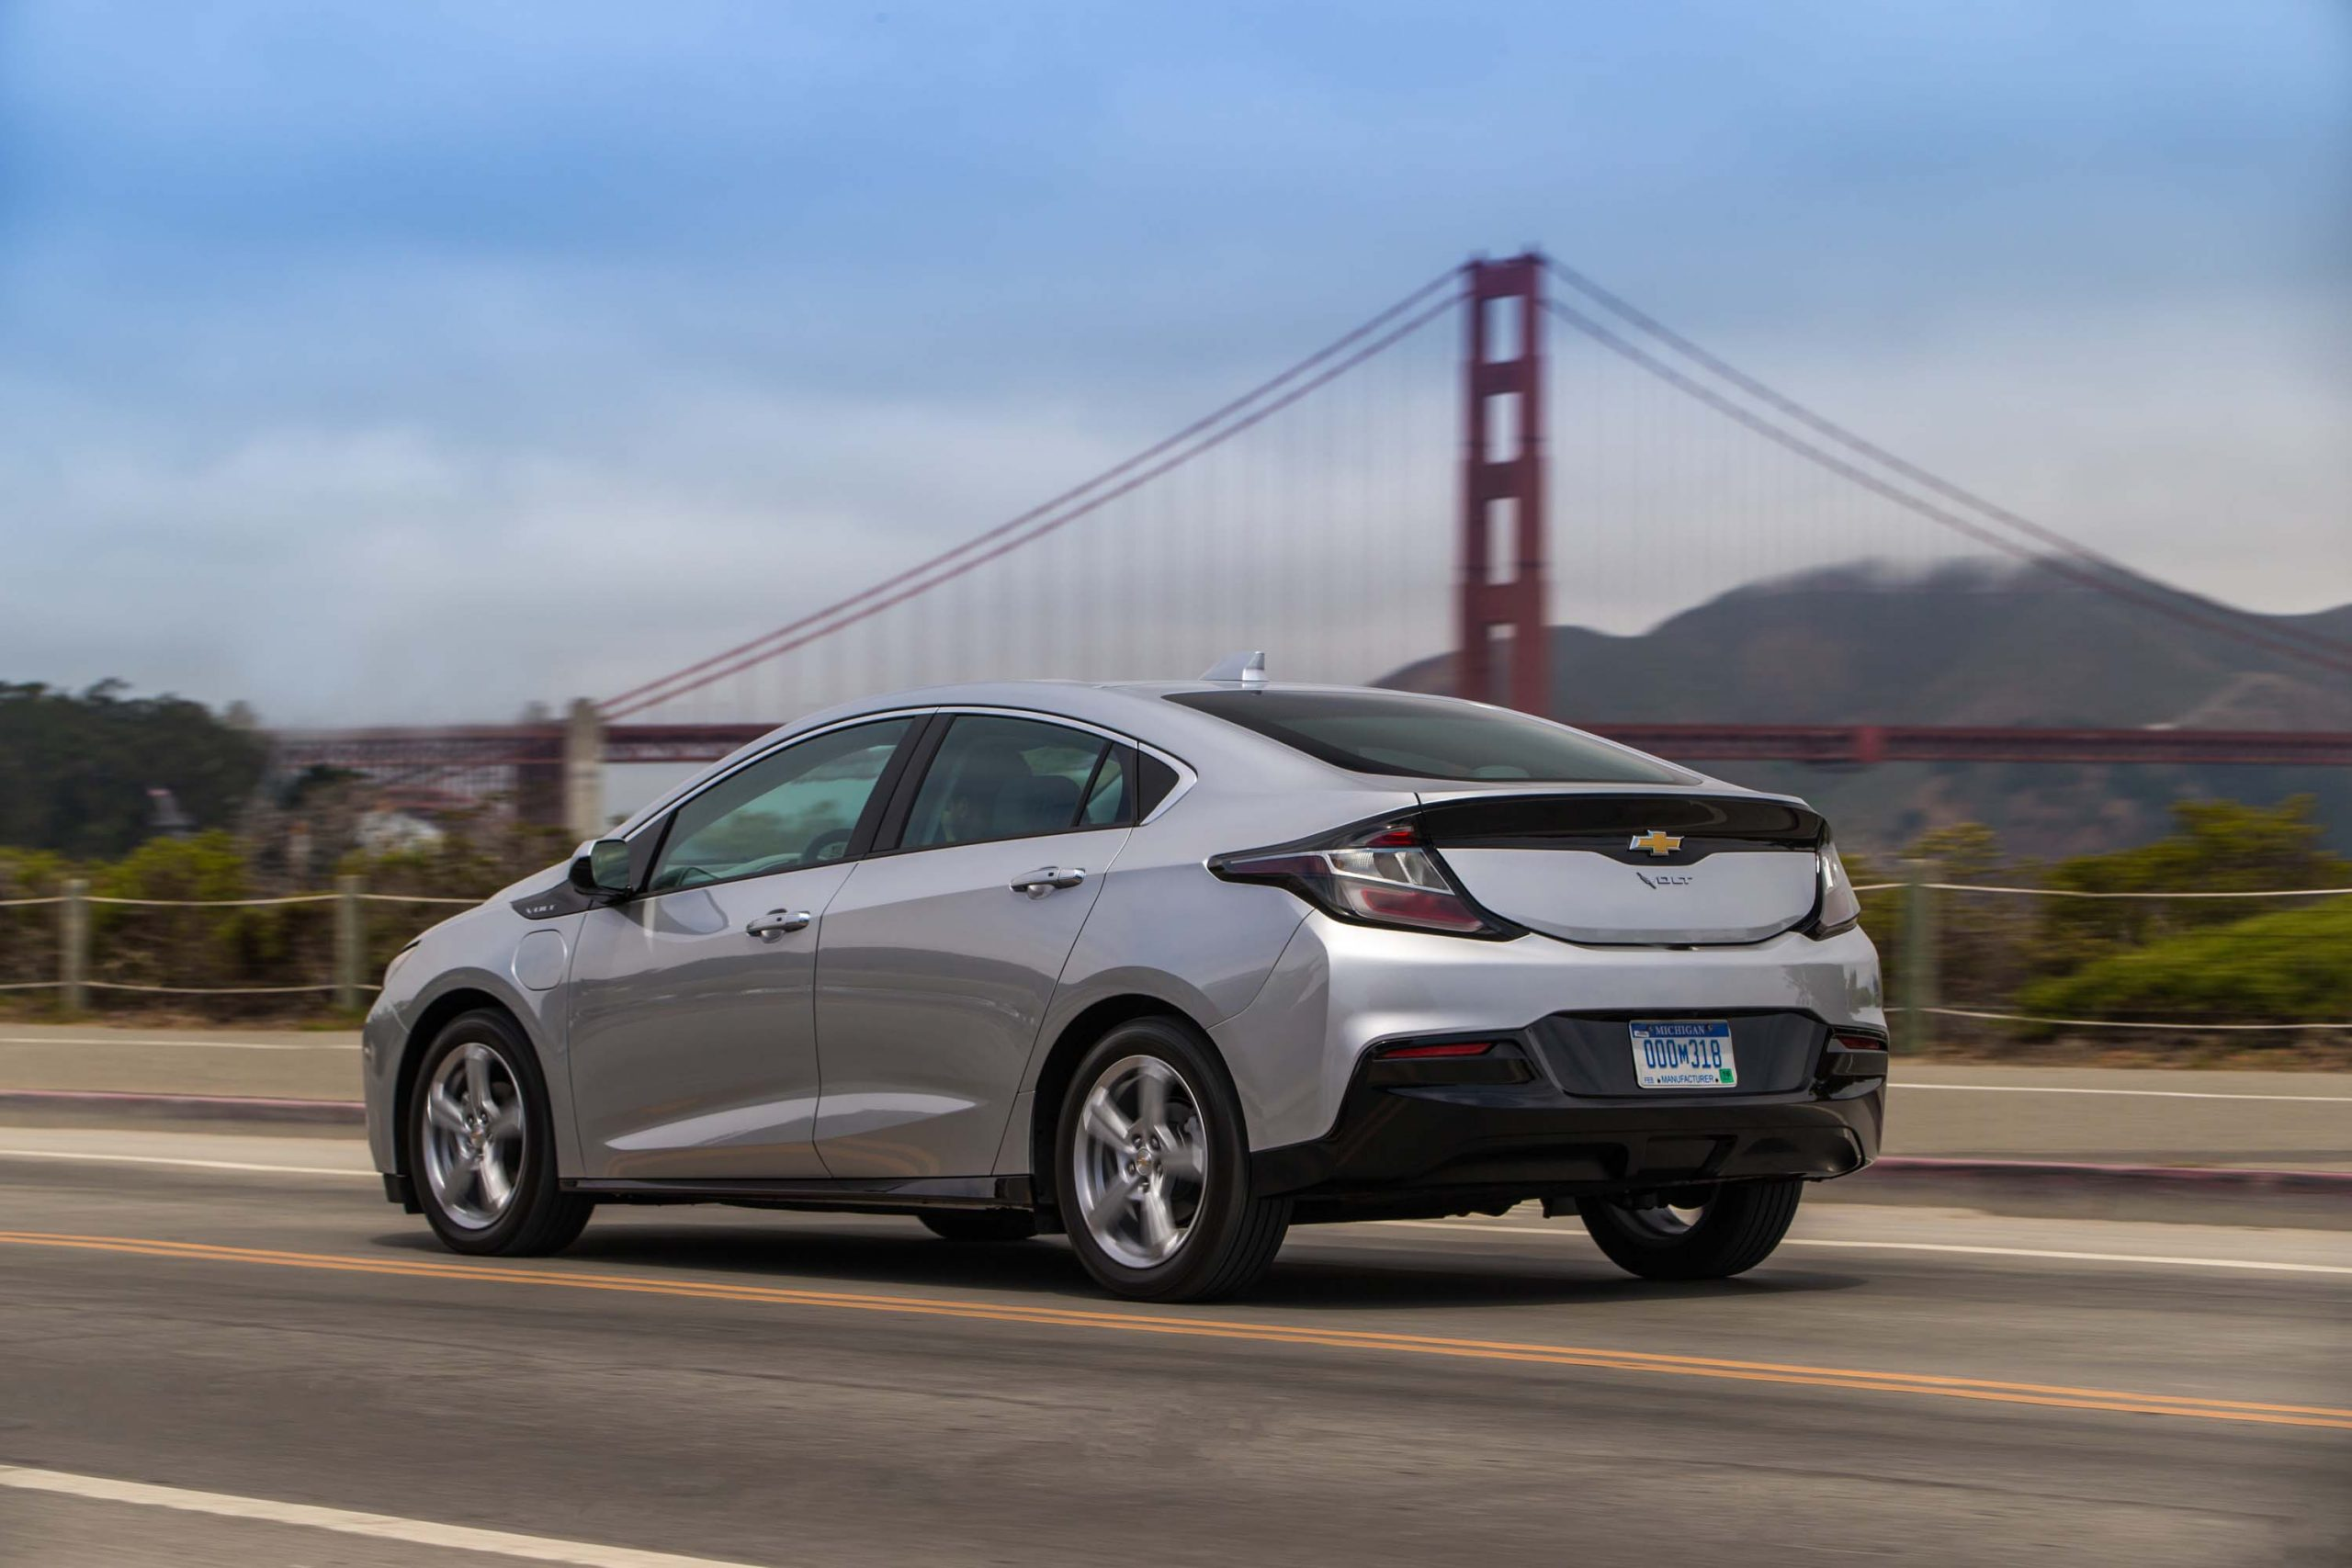 10 Lessons From The Short Life Of The Chevy Volt, 2011-2019 2021 Chevy Volt Problems, Parts, Pictures